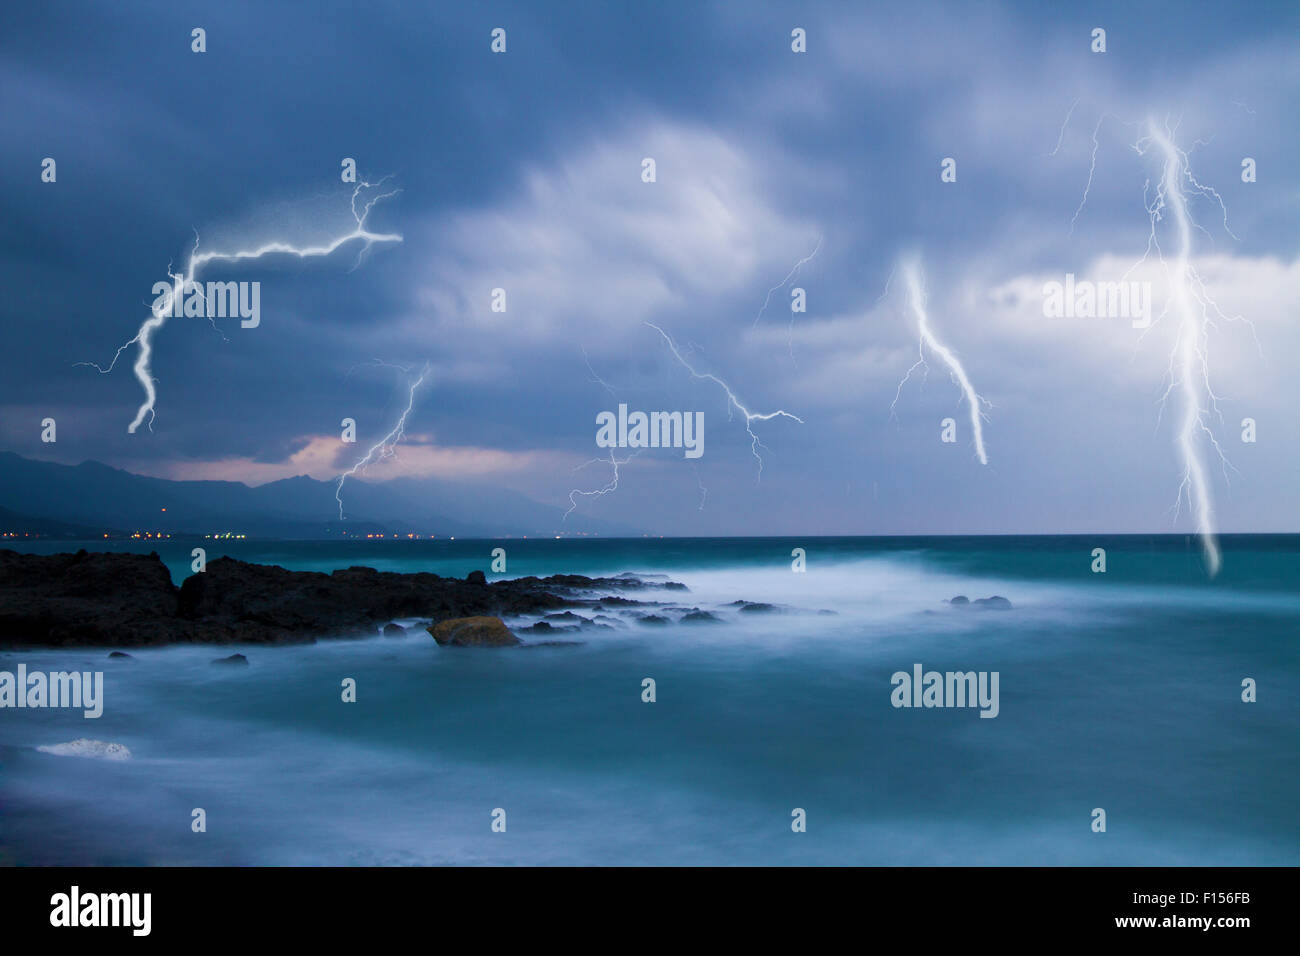 Lightning flashes across the beach from a powerful storm - Stock Image